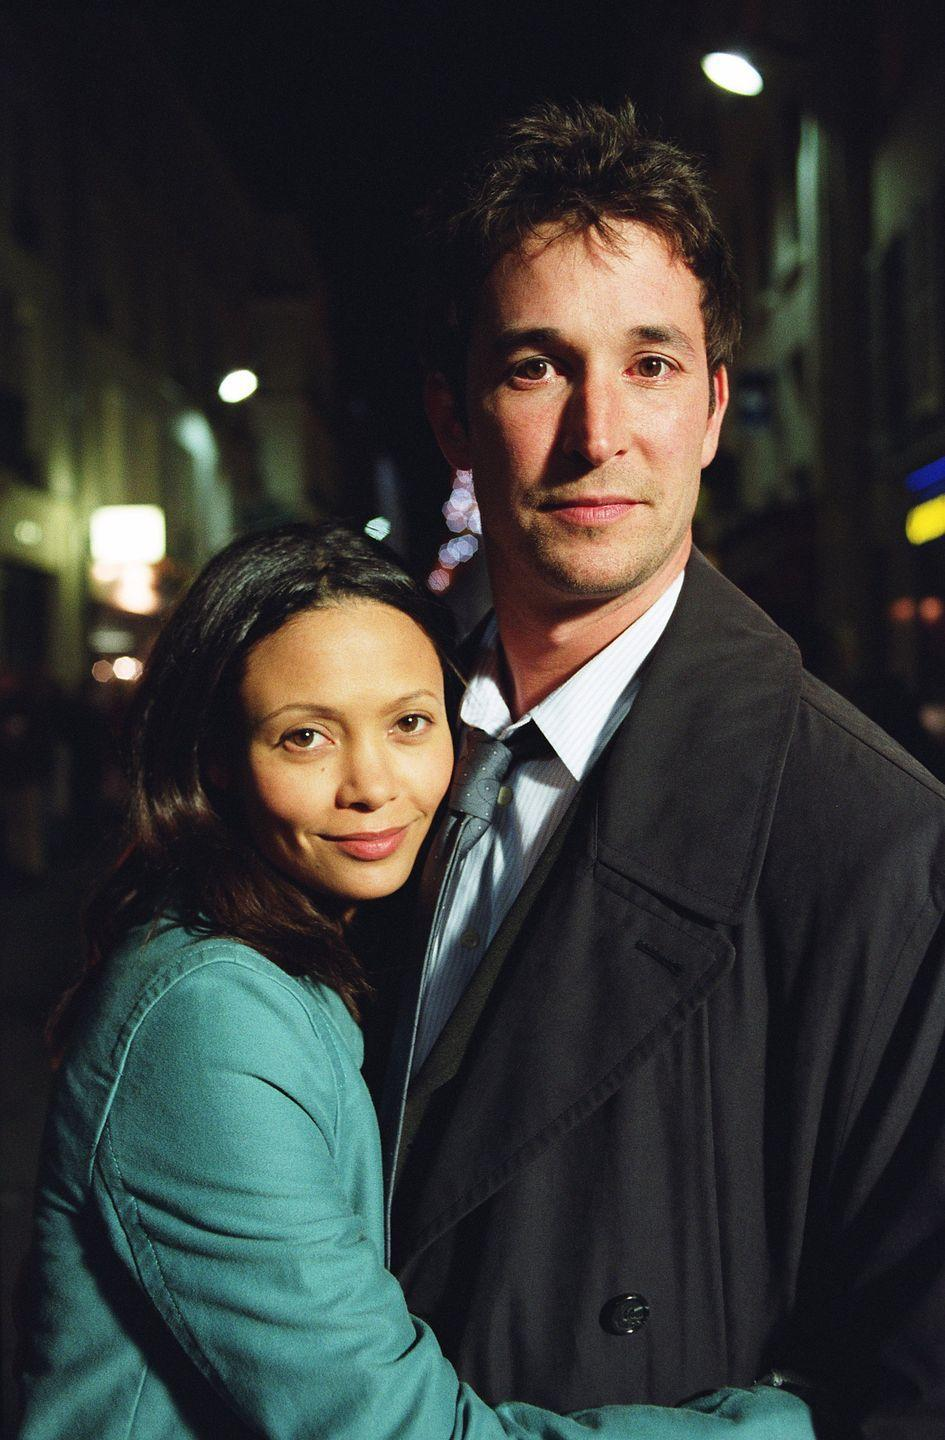 """<p>Thandie Newton's reoccurring role on <em>ER </em>marked her <a href=""""https://www.chicagotribune.com/news/ct-xpm-2003-11-20-0311210071-story.html"""" rel=""""nofollow noopener"""" target=""""_blank"""" data-ylk=""""slk:first appearance on a U.S. series"""" class=""""link rapid-noclick-resp"""">first appearance on a U.S. series</a>. The <em>Westworld </em>actress played Makemba Likasu, an administrator in the Democratic Republic of Congo's health ministry and love interest for Dr. John Carter (Noah Wyle). </p>"""